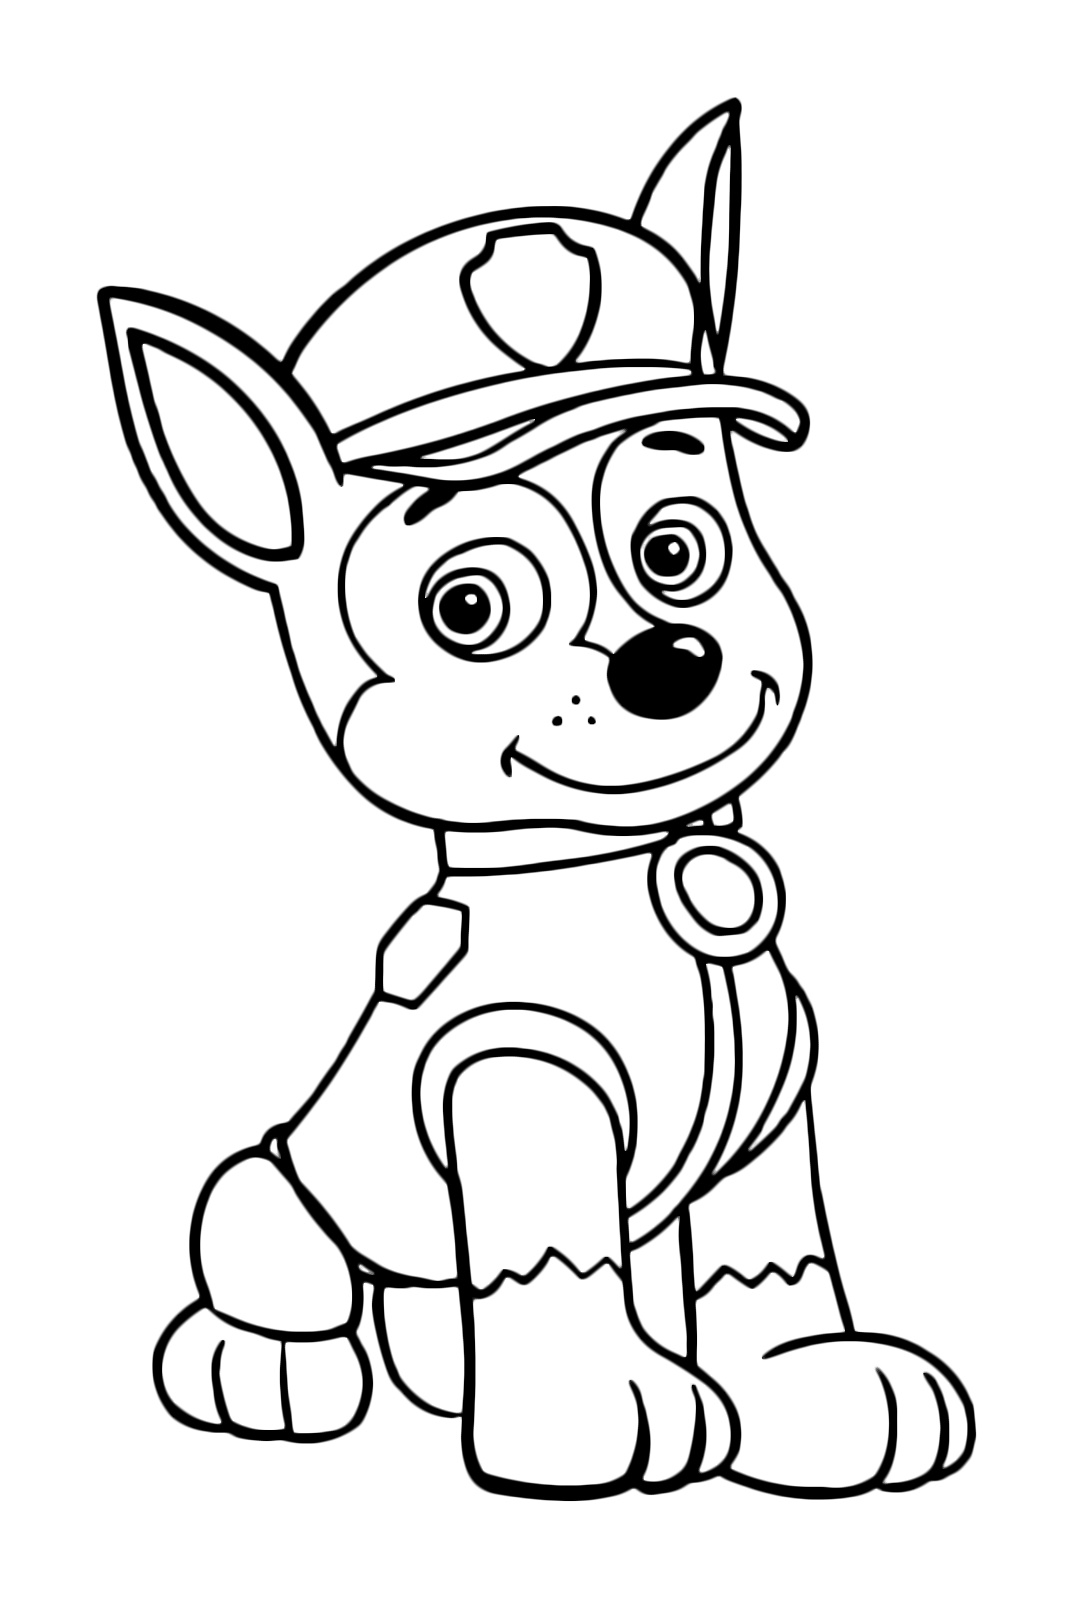 paw patrol chase coloring chase paw patrol coloring pages at getdrawings free download patrol paw coloring chase